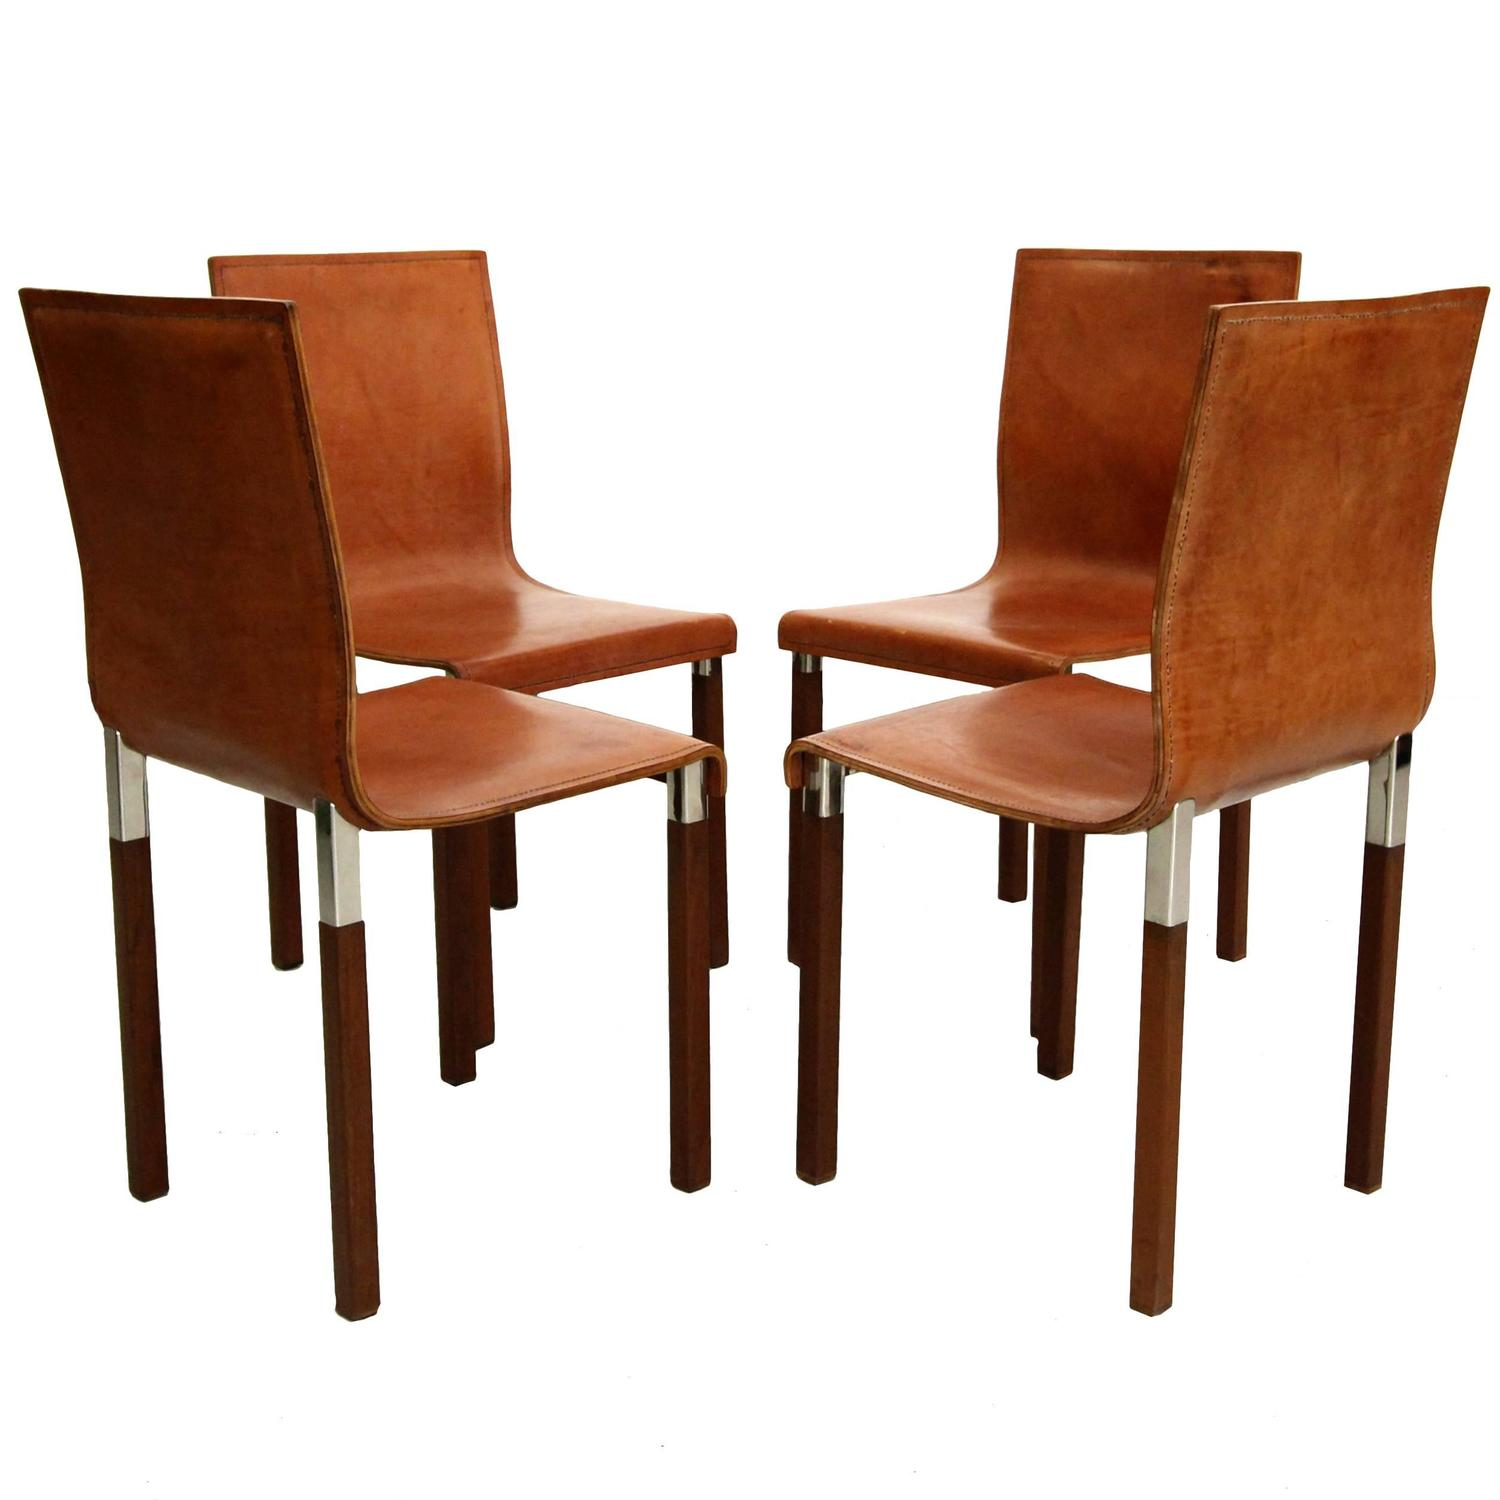 Set of four leather emile industrial modern dining chairs by zele company at 1stdibs - Modern leather dining room chairs ...